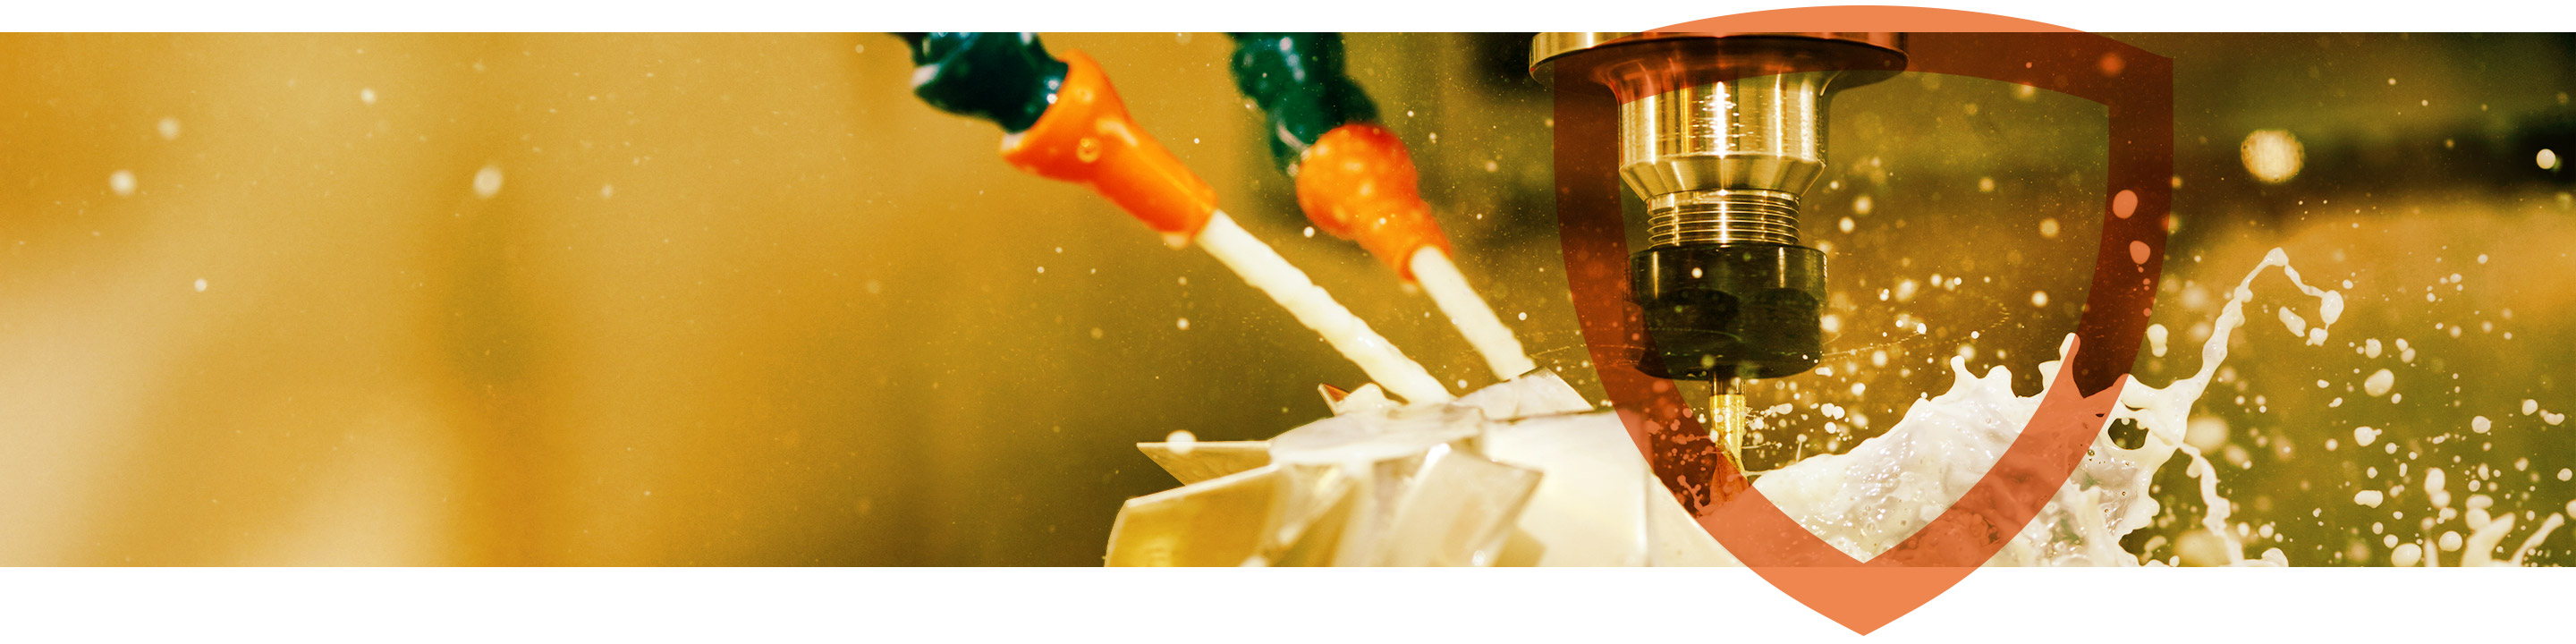 Metalworking Industry Header Image